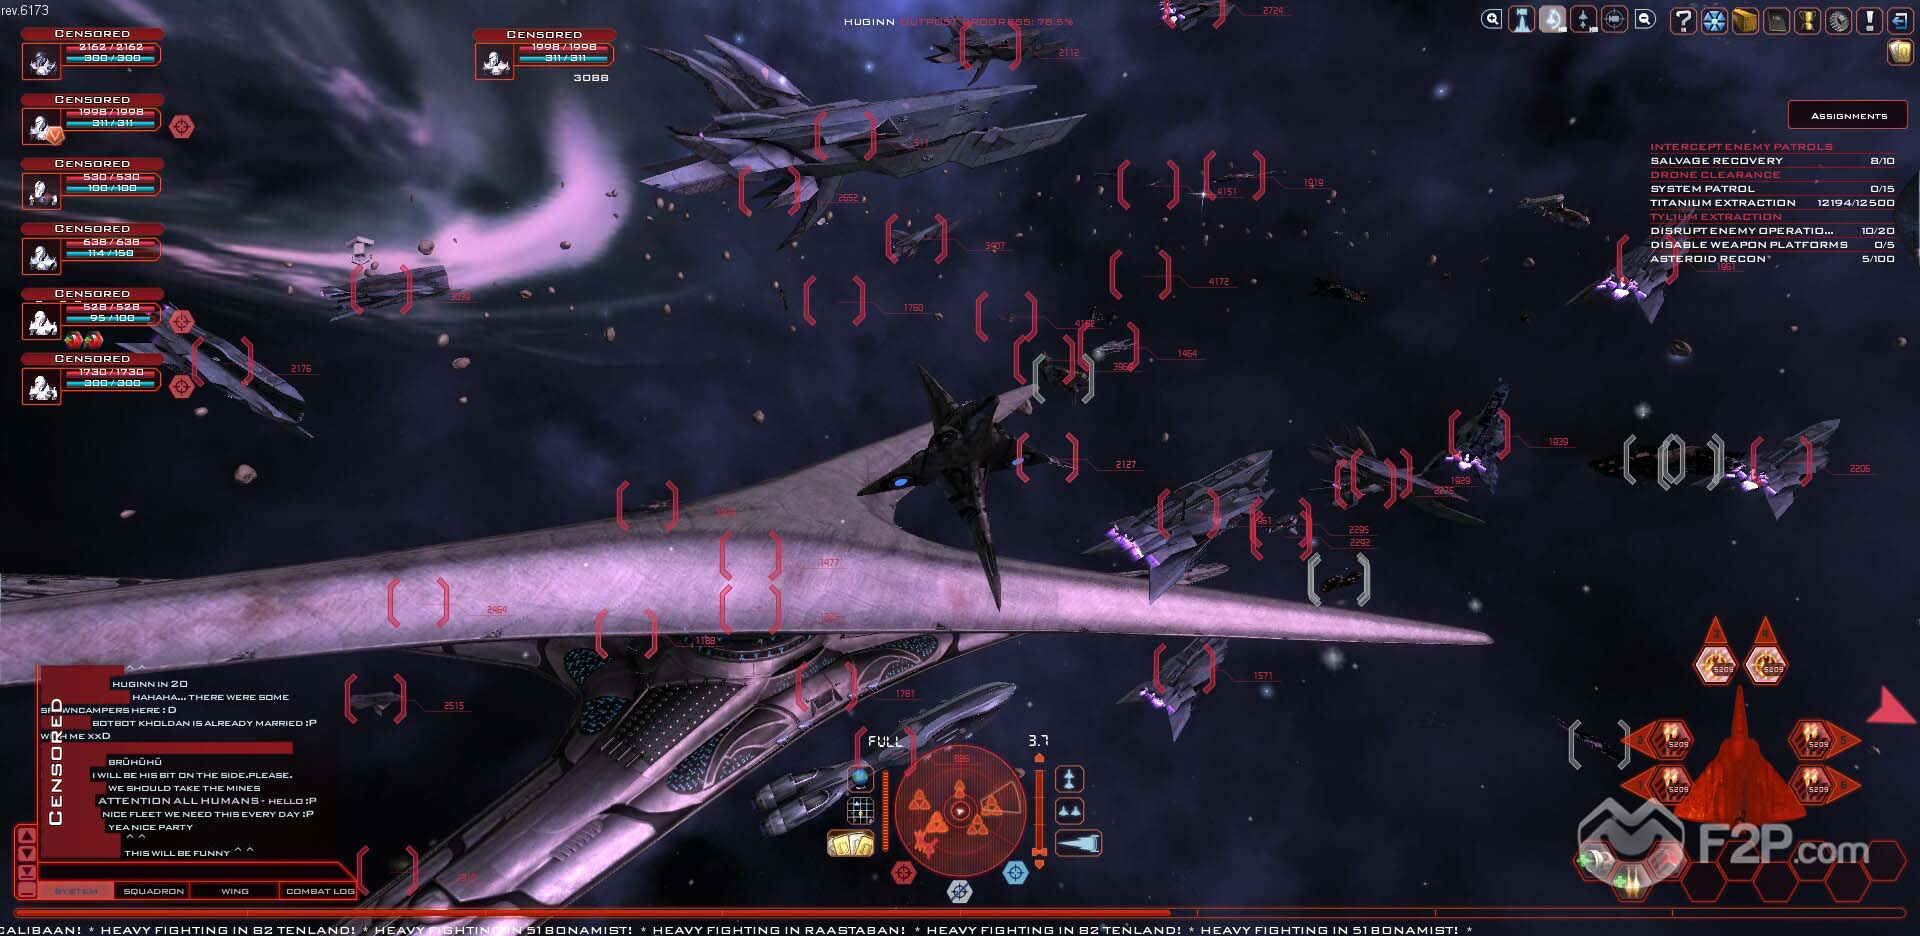 Battlestar Galactica Online by Bigpoint and Artplant